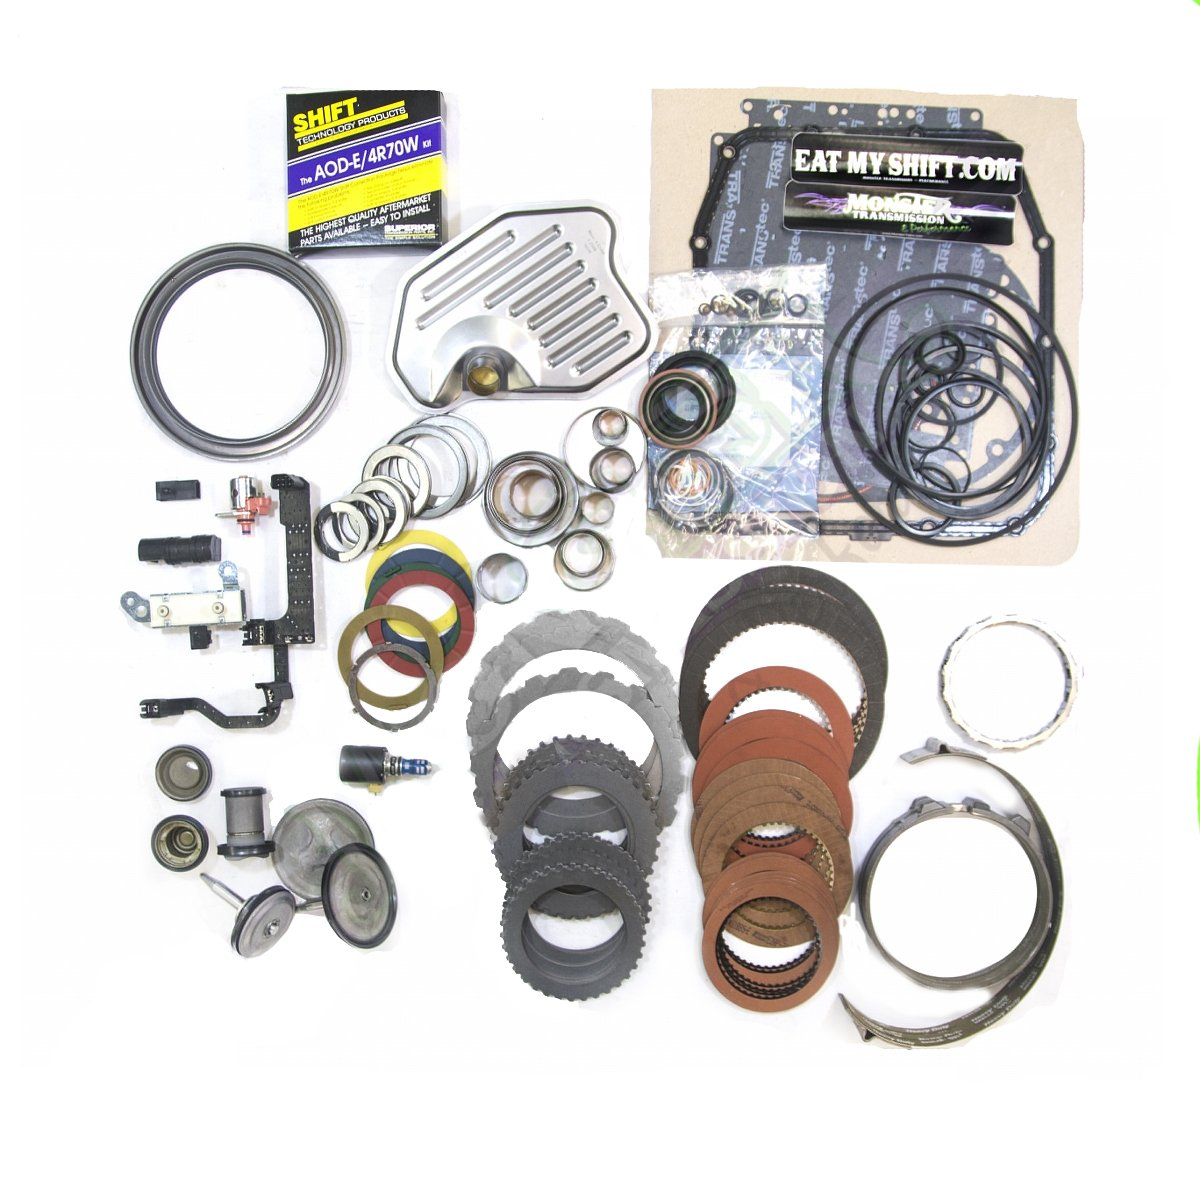 4R70W Mega Monster Complete Rebuild Kit: 2004-2007